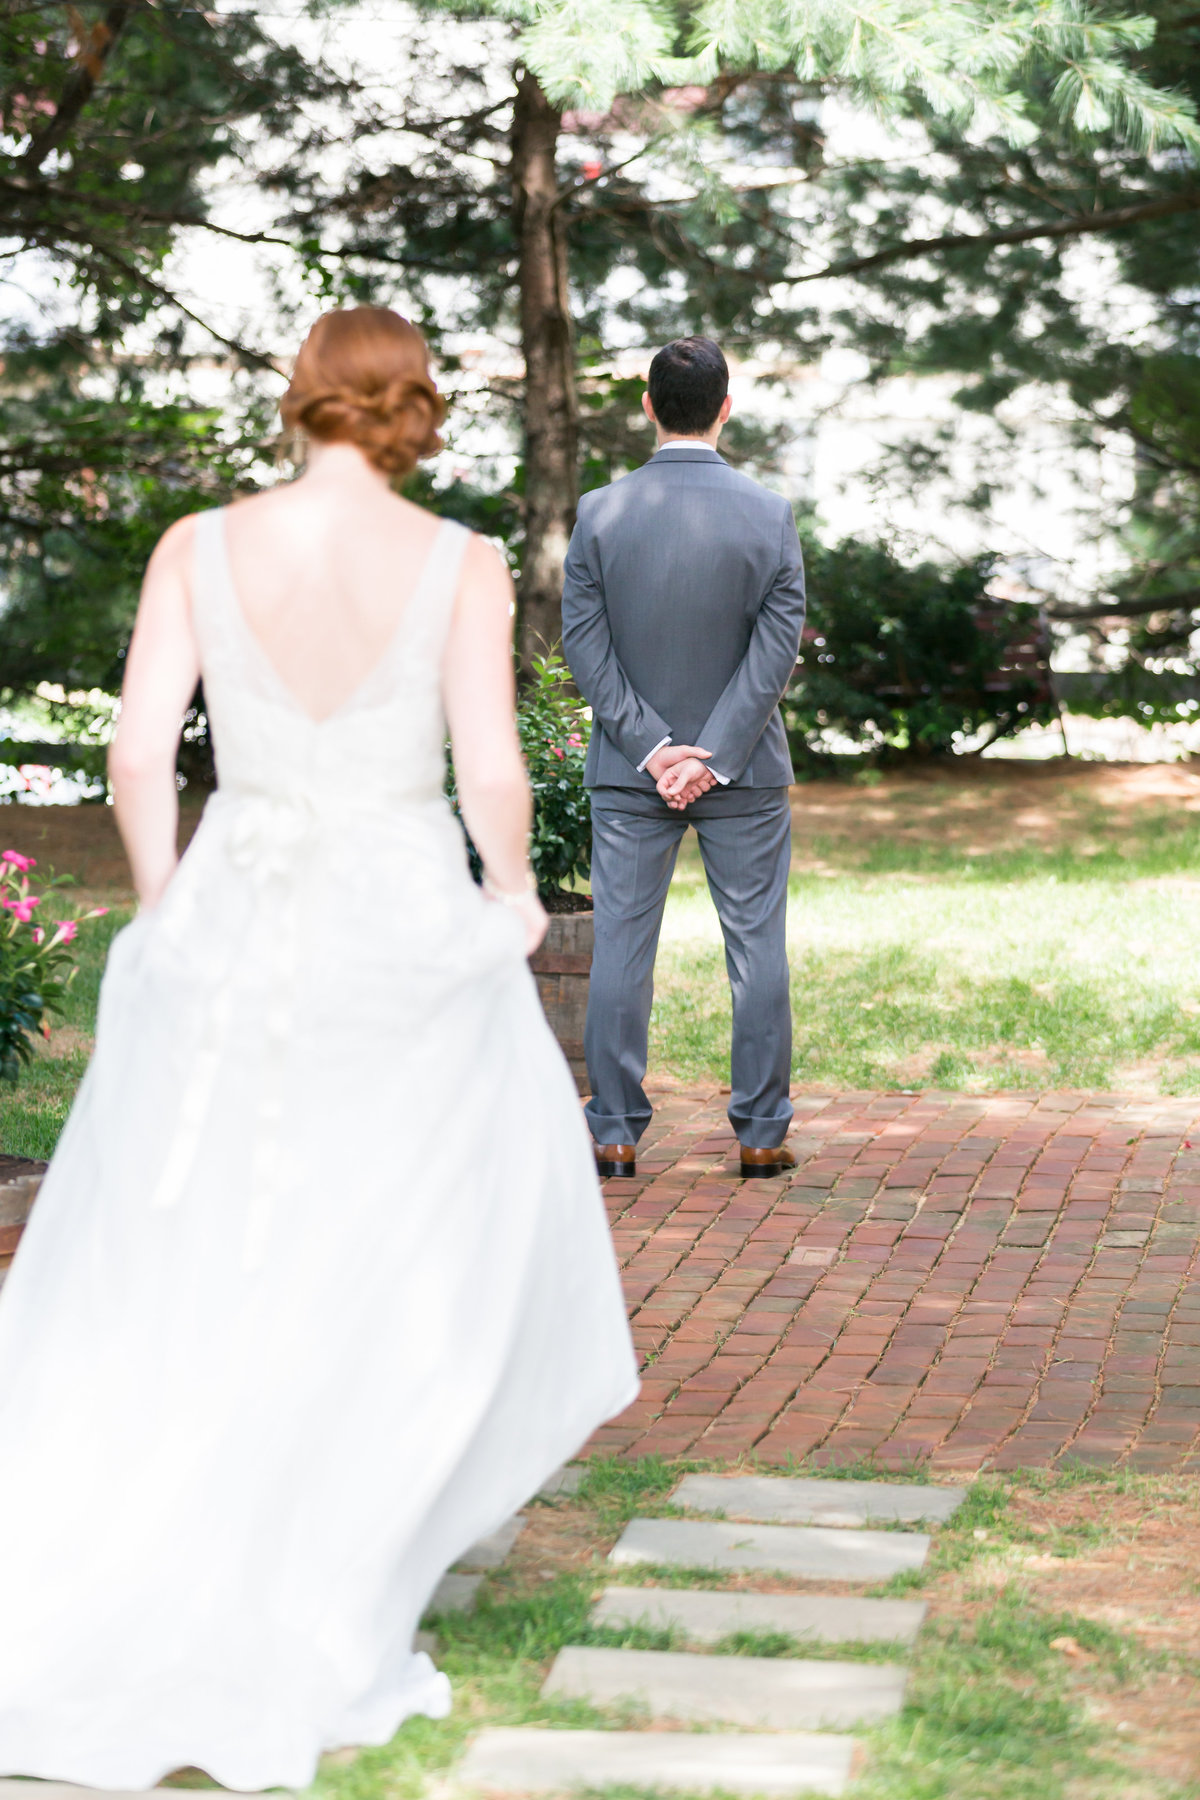 First look at a wedding in Fredericksburg, VA